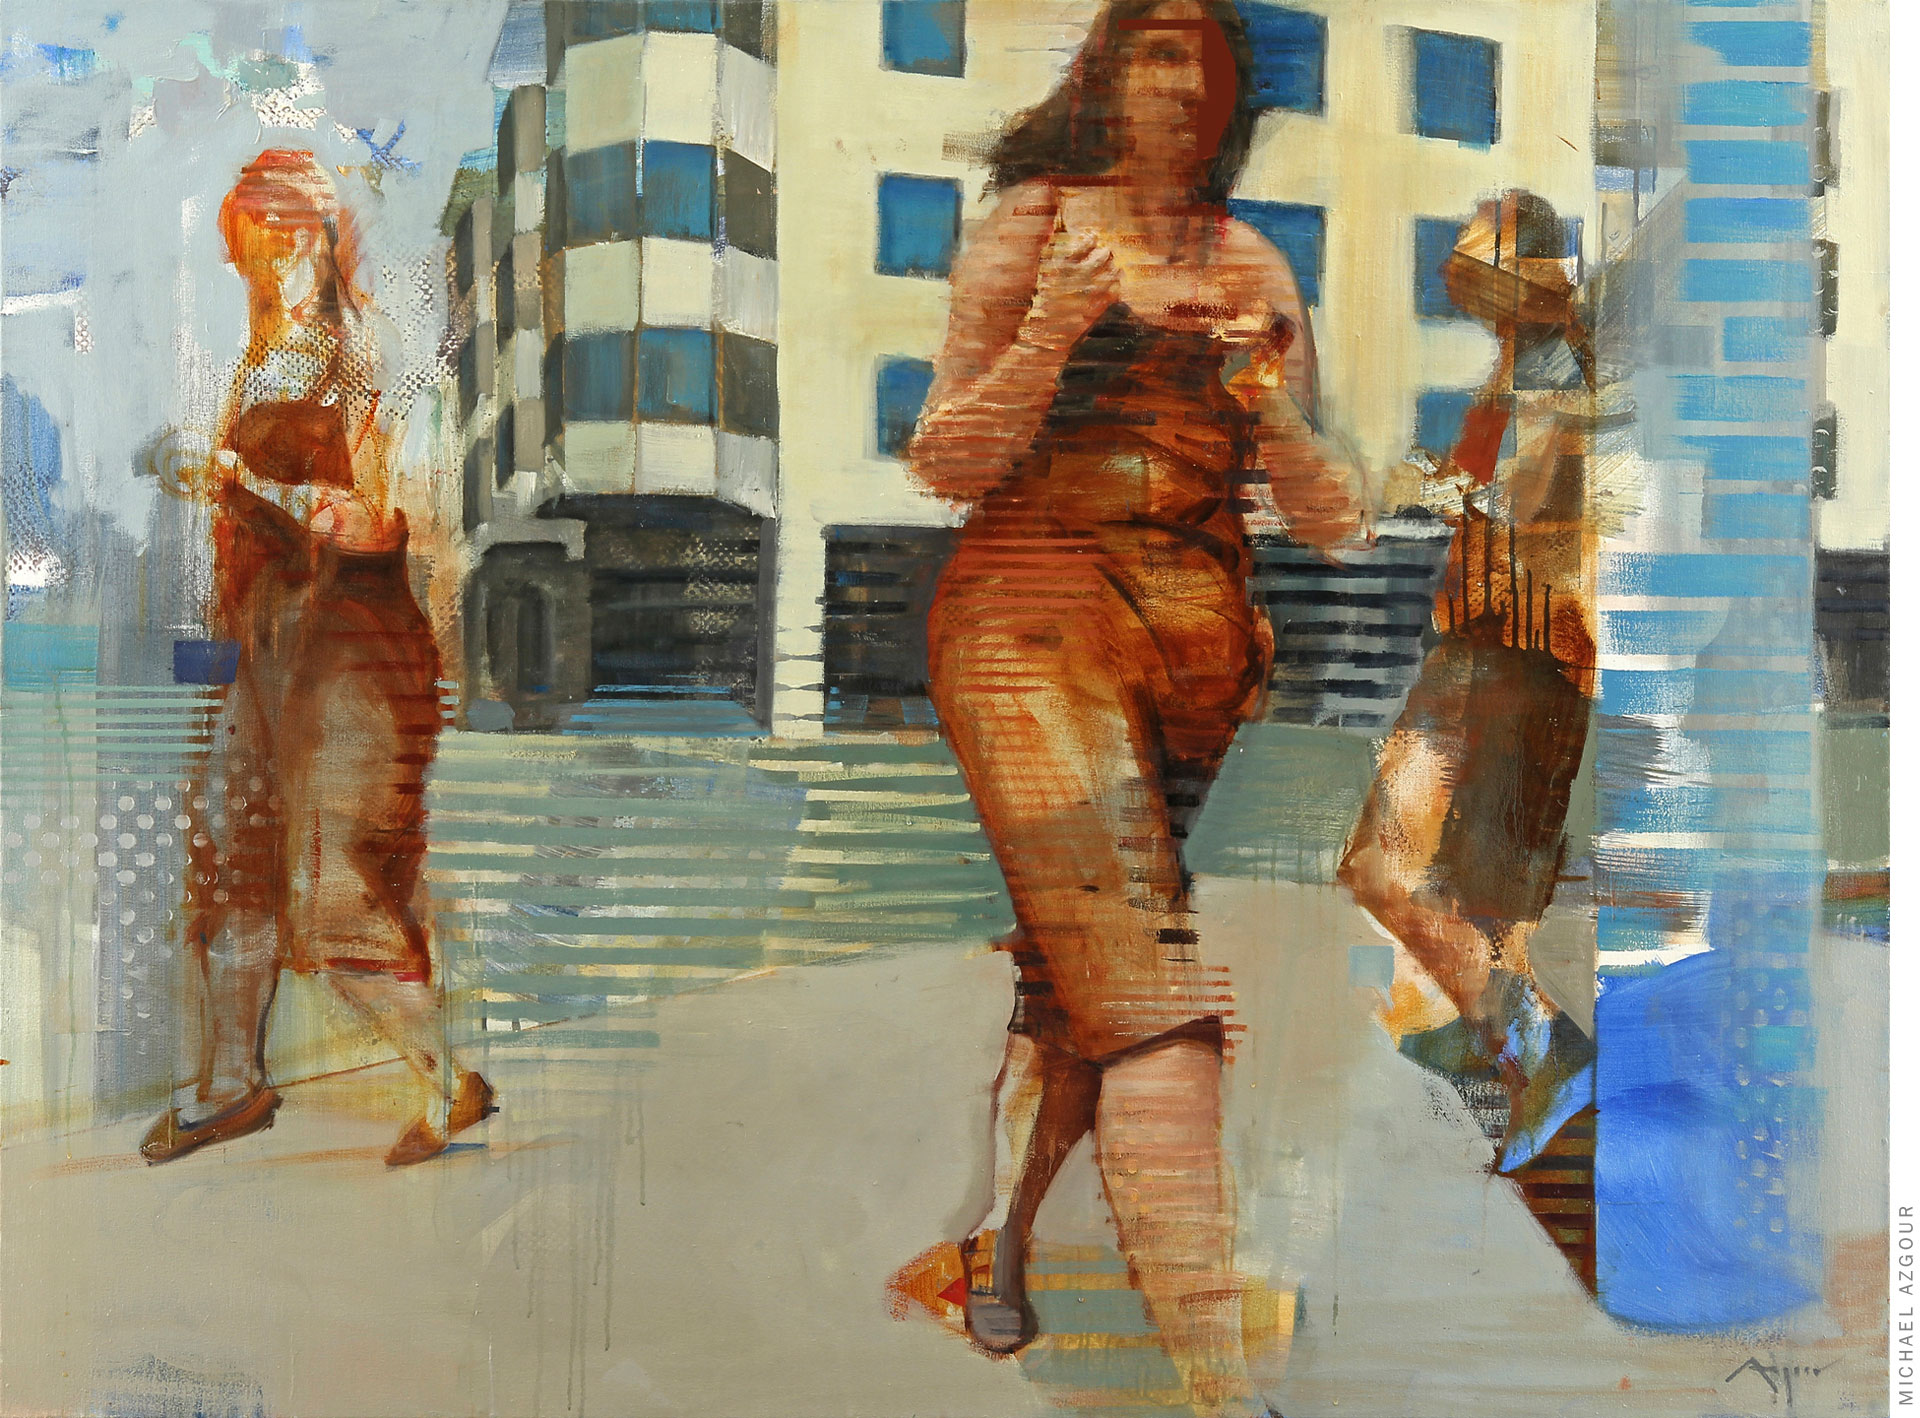 The painting depicts 3 female figures walking and posing in an urban setting. Artwork titled Movement Mission 2